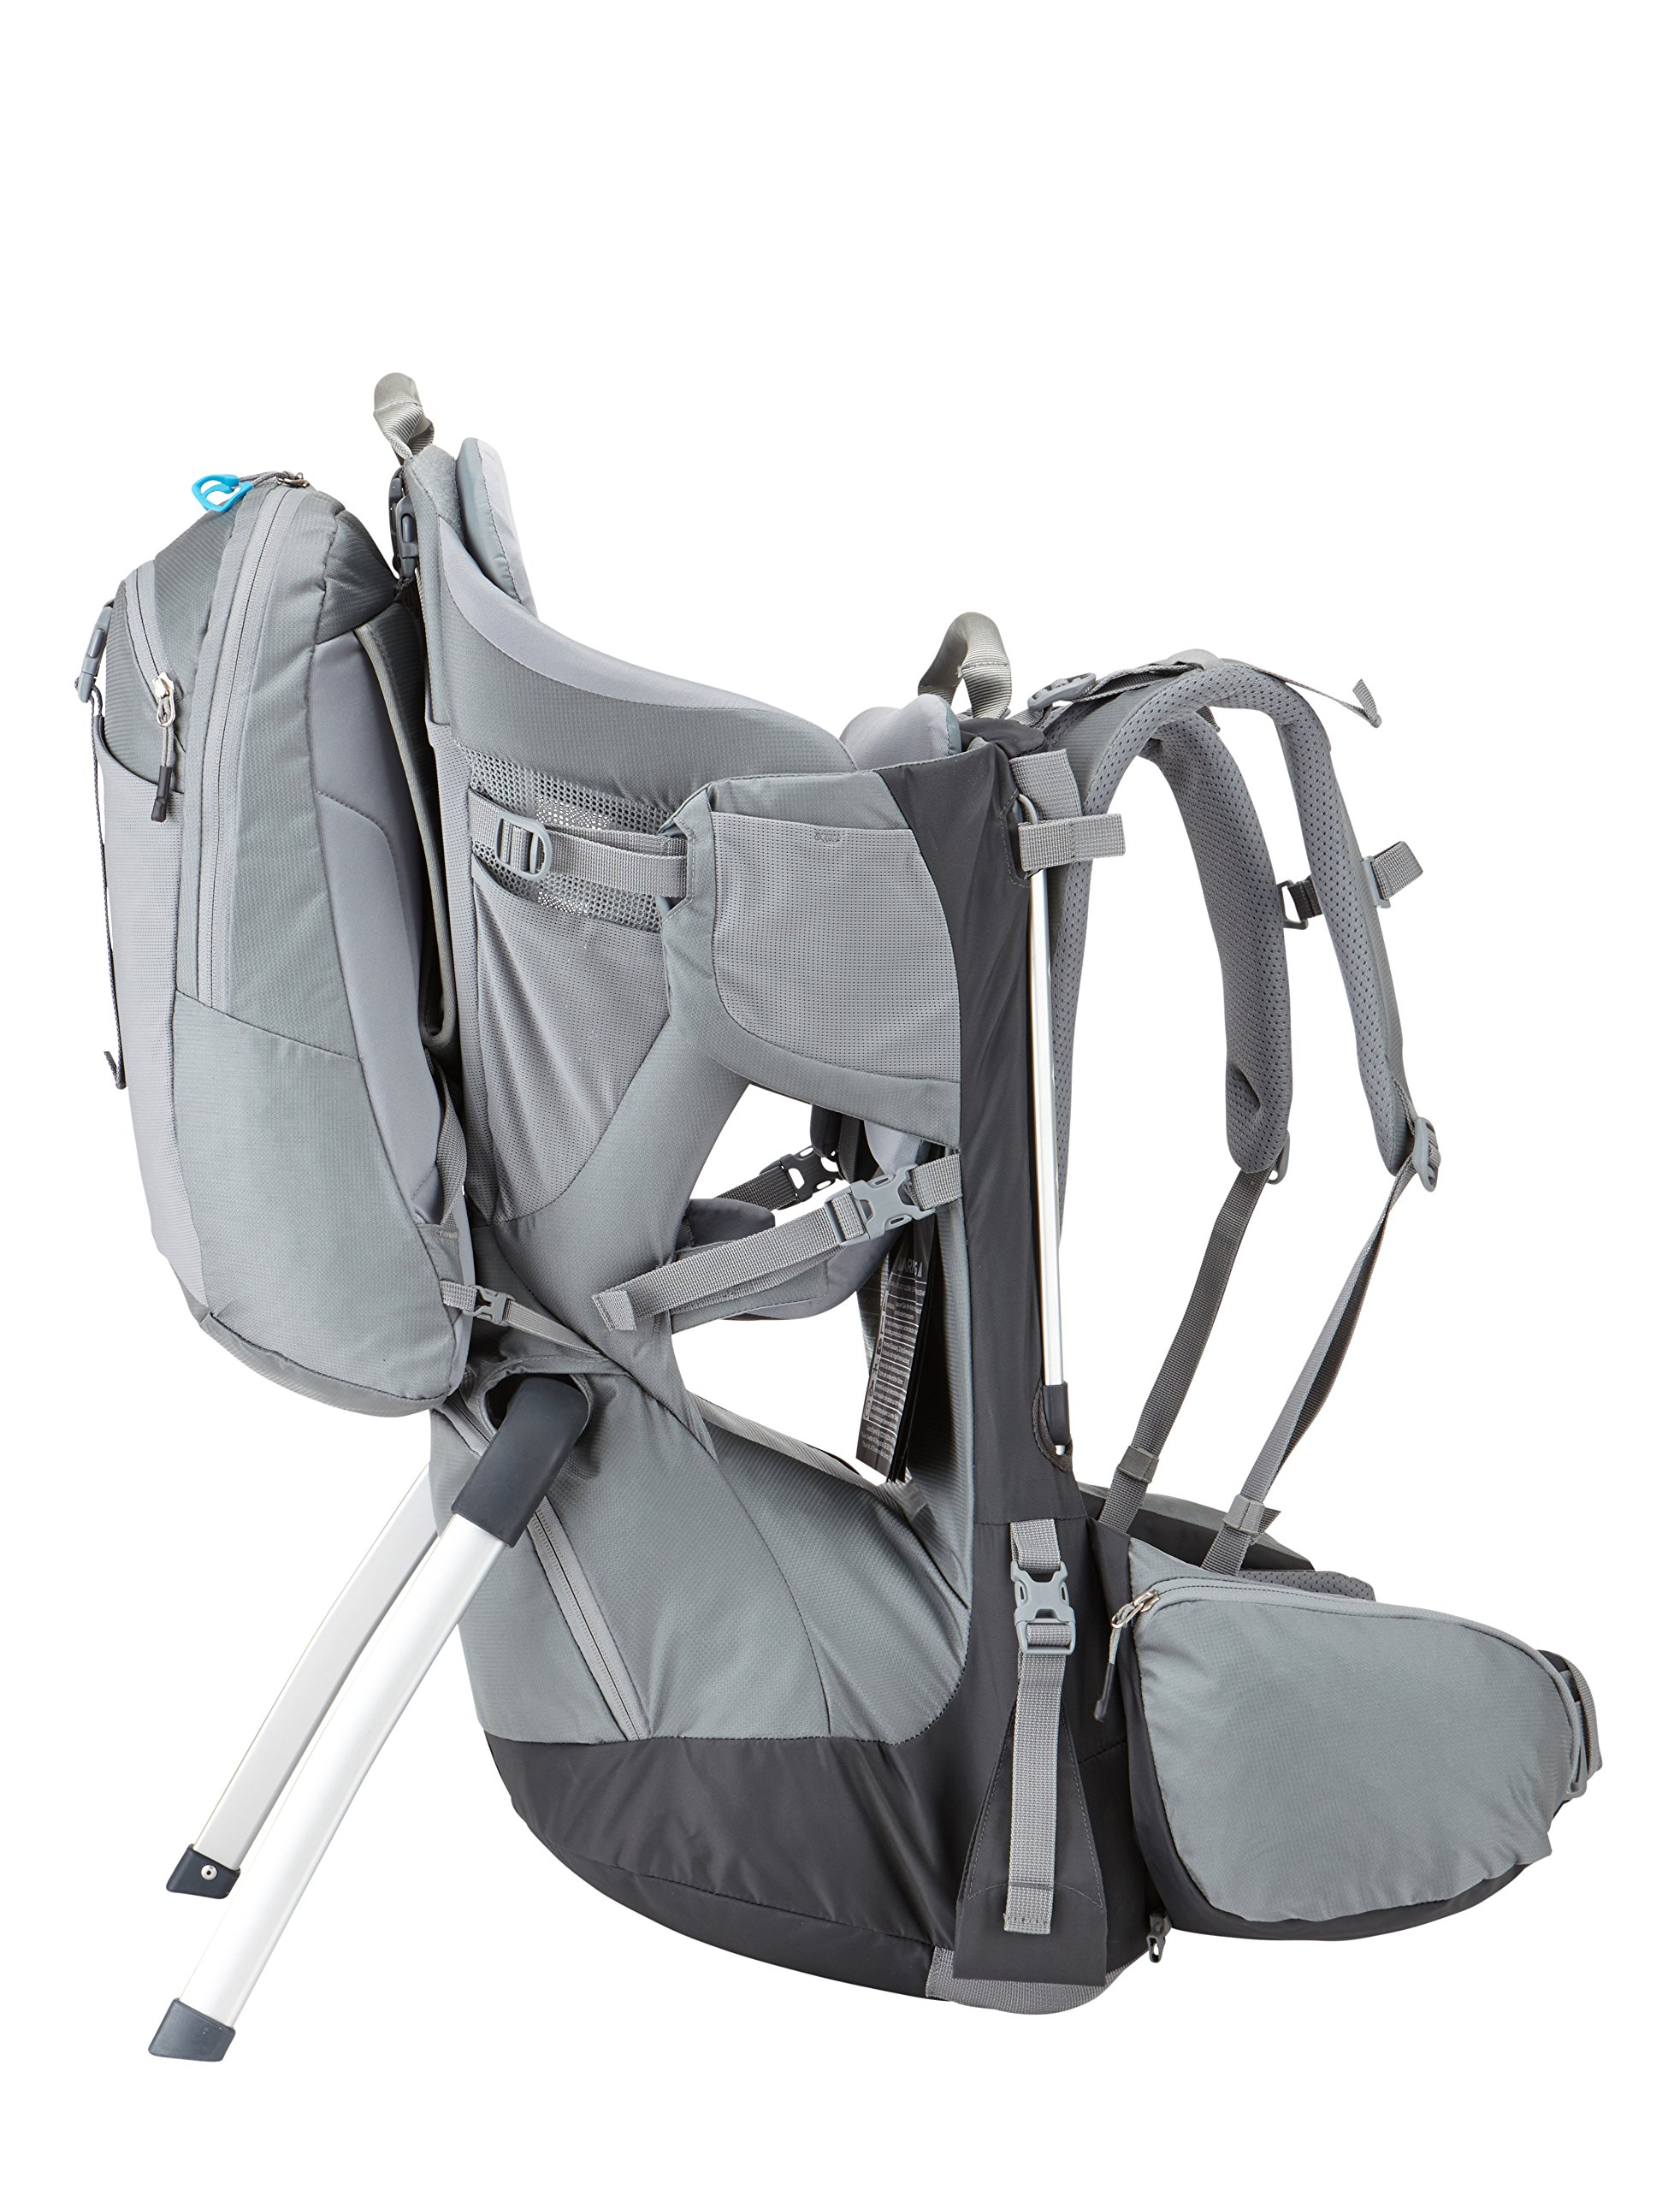 Thule Sapling Elite Child Carrier  Removable backpack and large zippered compartment store diapers, clothes and other gear Fully adjustable back panel and hip belt make the transition between parents quick and easy, Plush, height adjustable, ergonomic seat efficiently distributes the child's weight by providing inner thigh support Breathable back panel allows air to circulate around your back 6